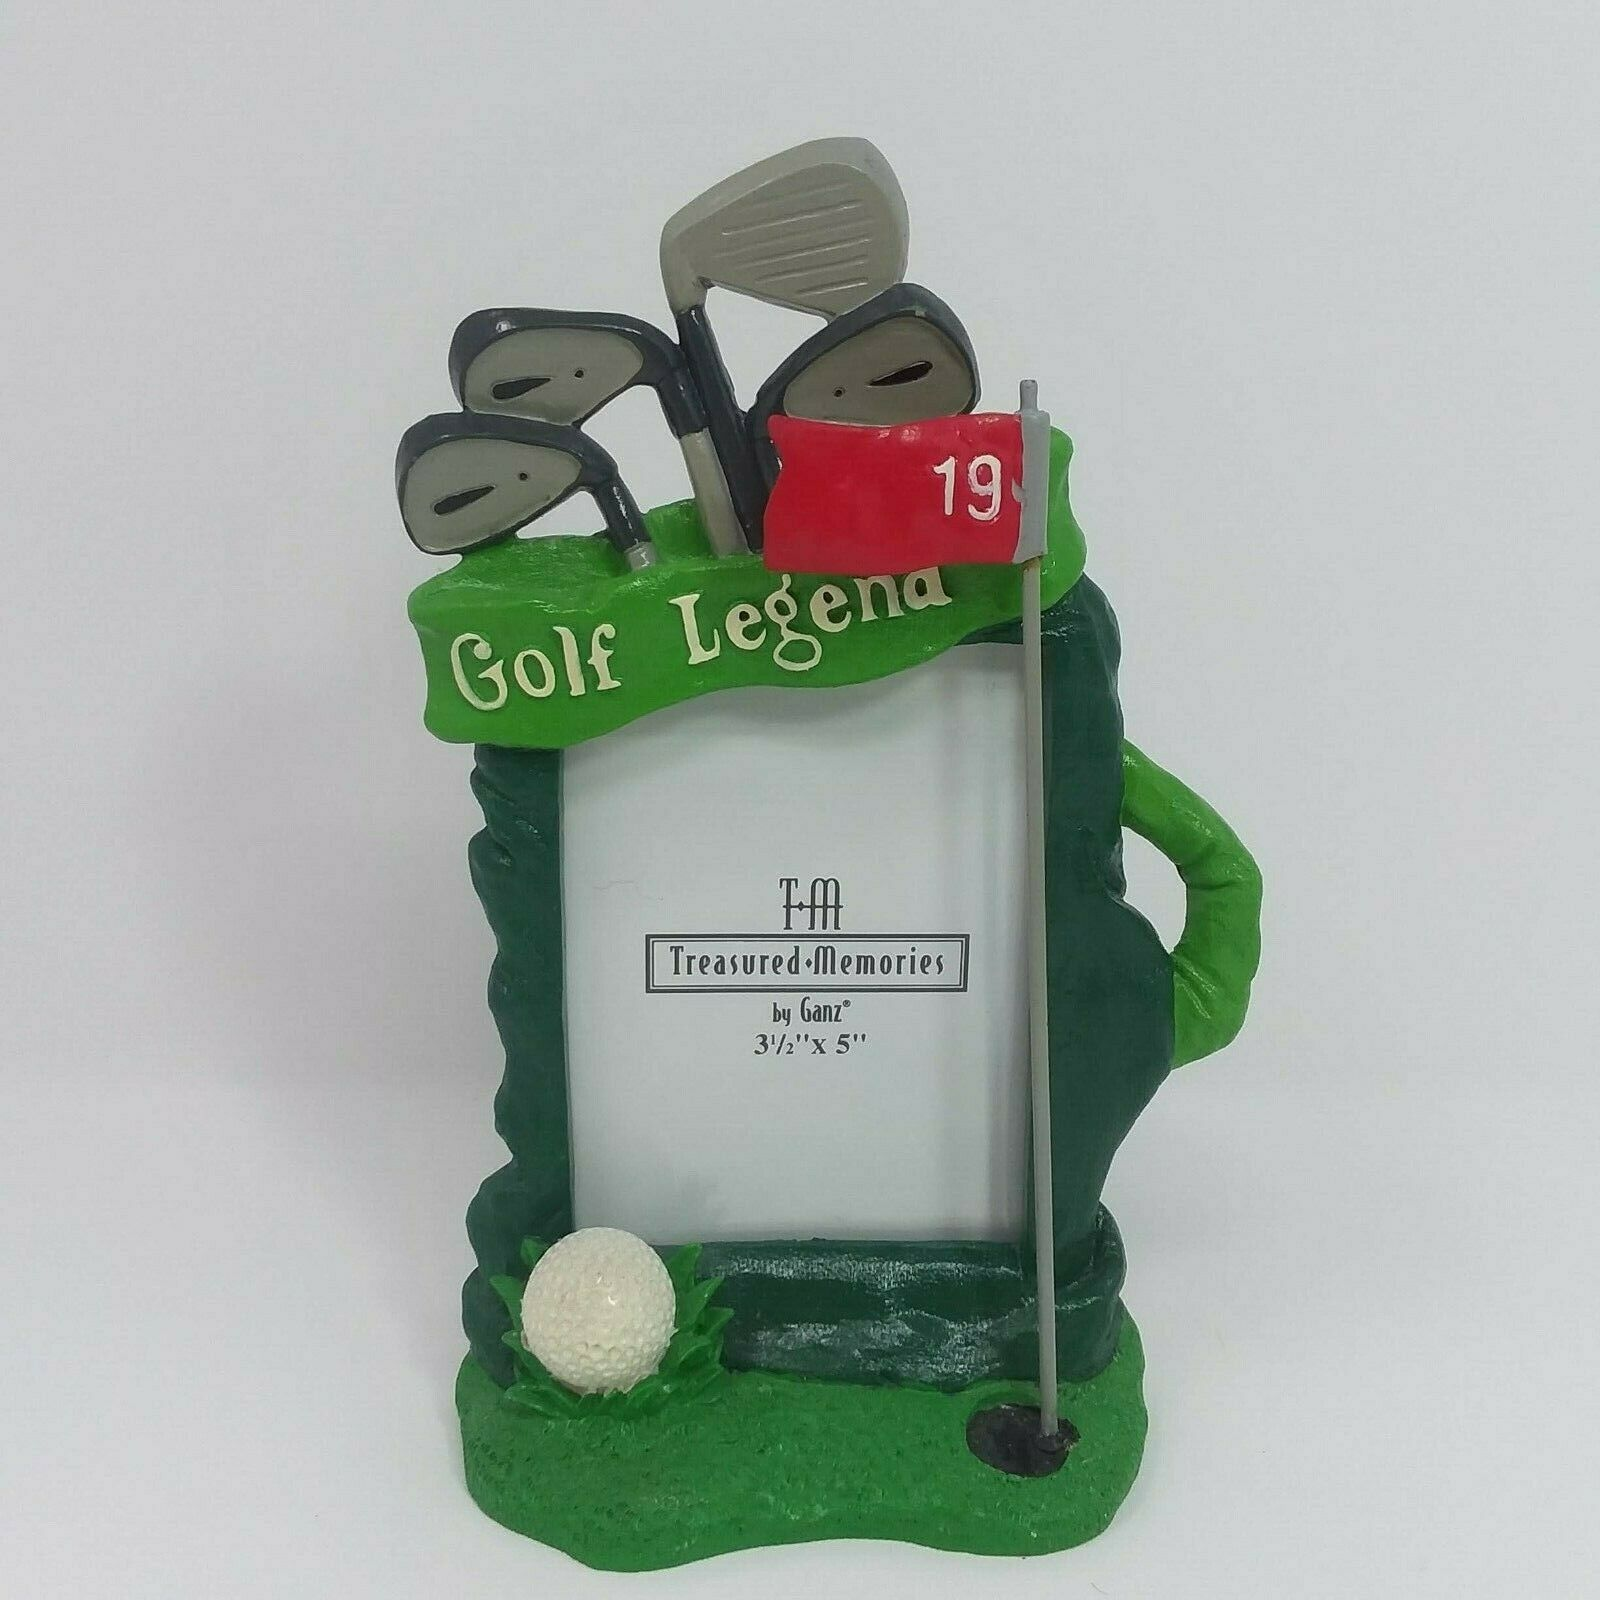 Primary image for Treasured Memories Golf Bag Club Theme 3.5 x 5 Picture Frame by Ganz Vertical